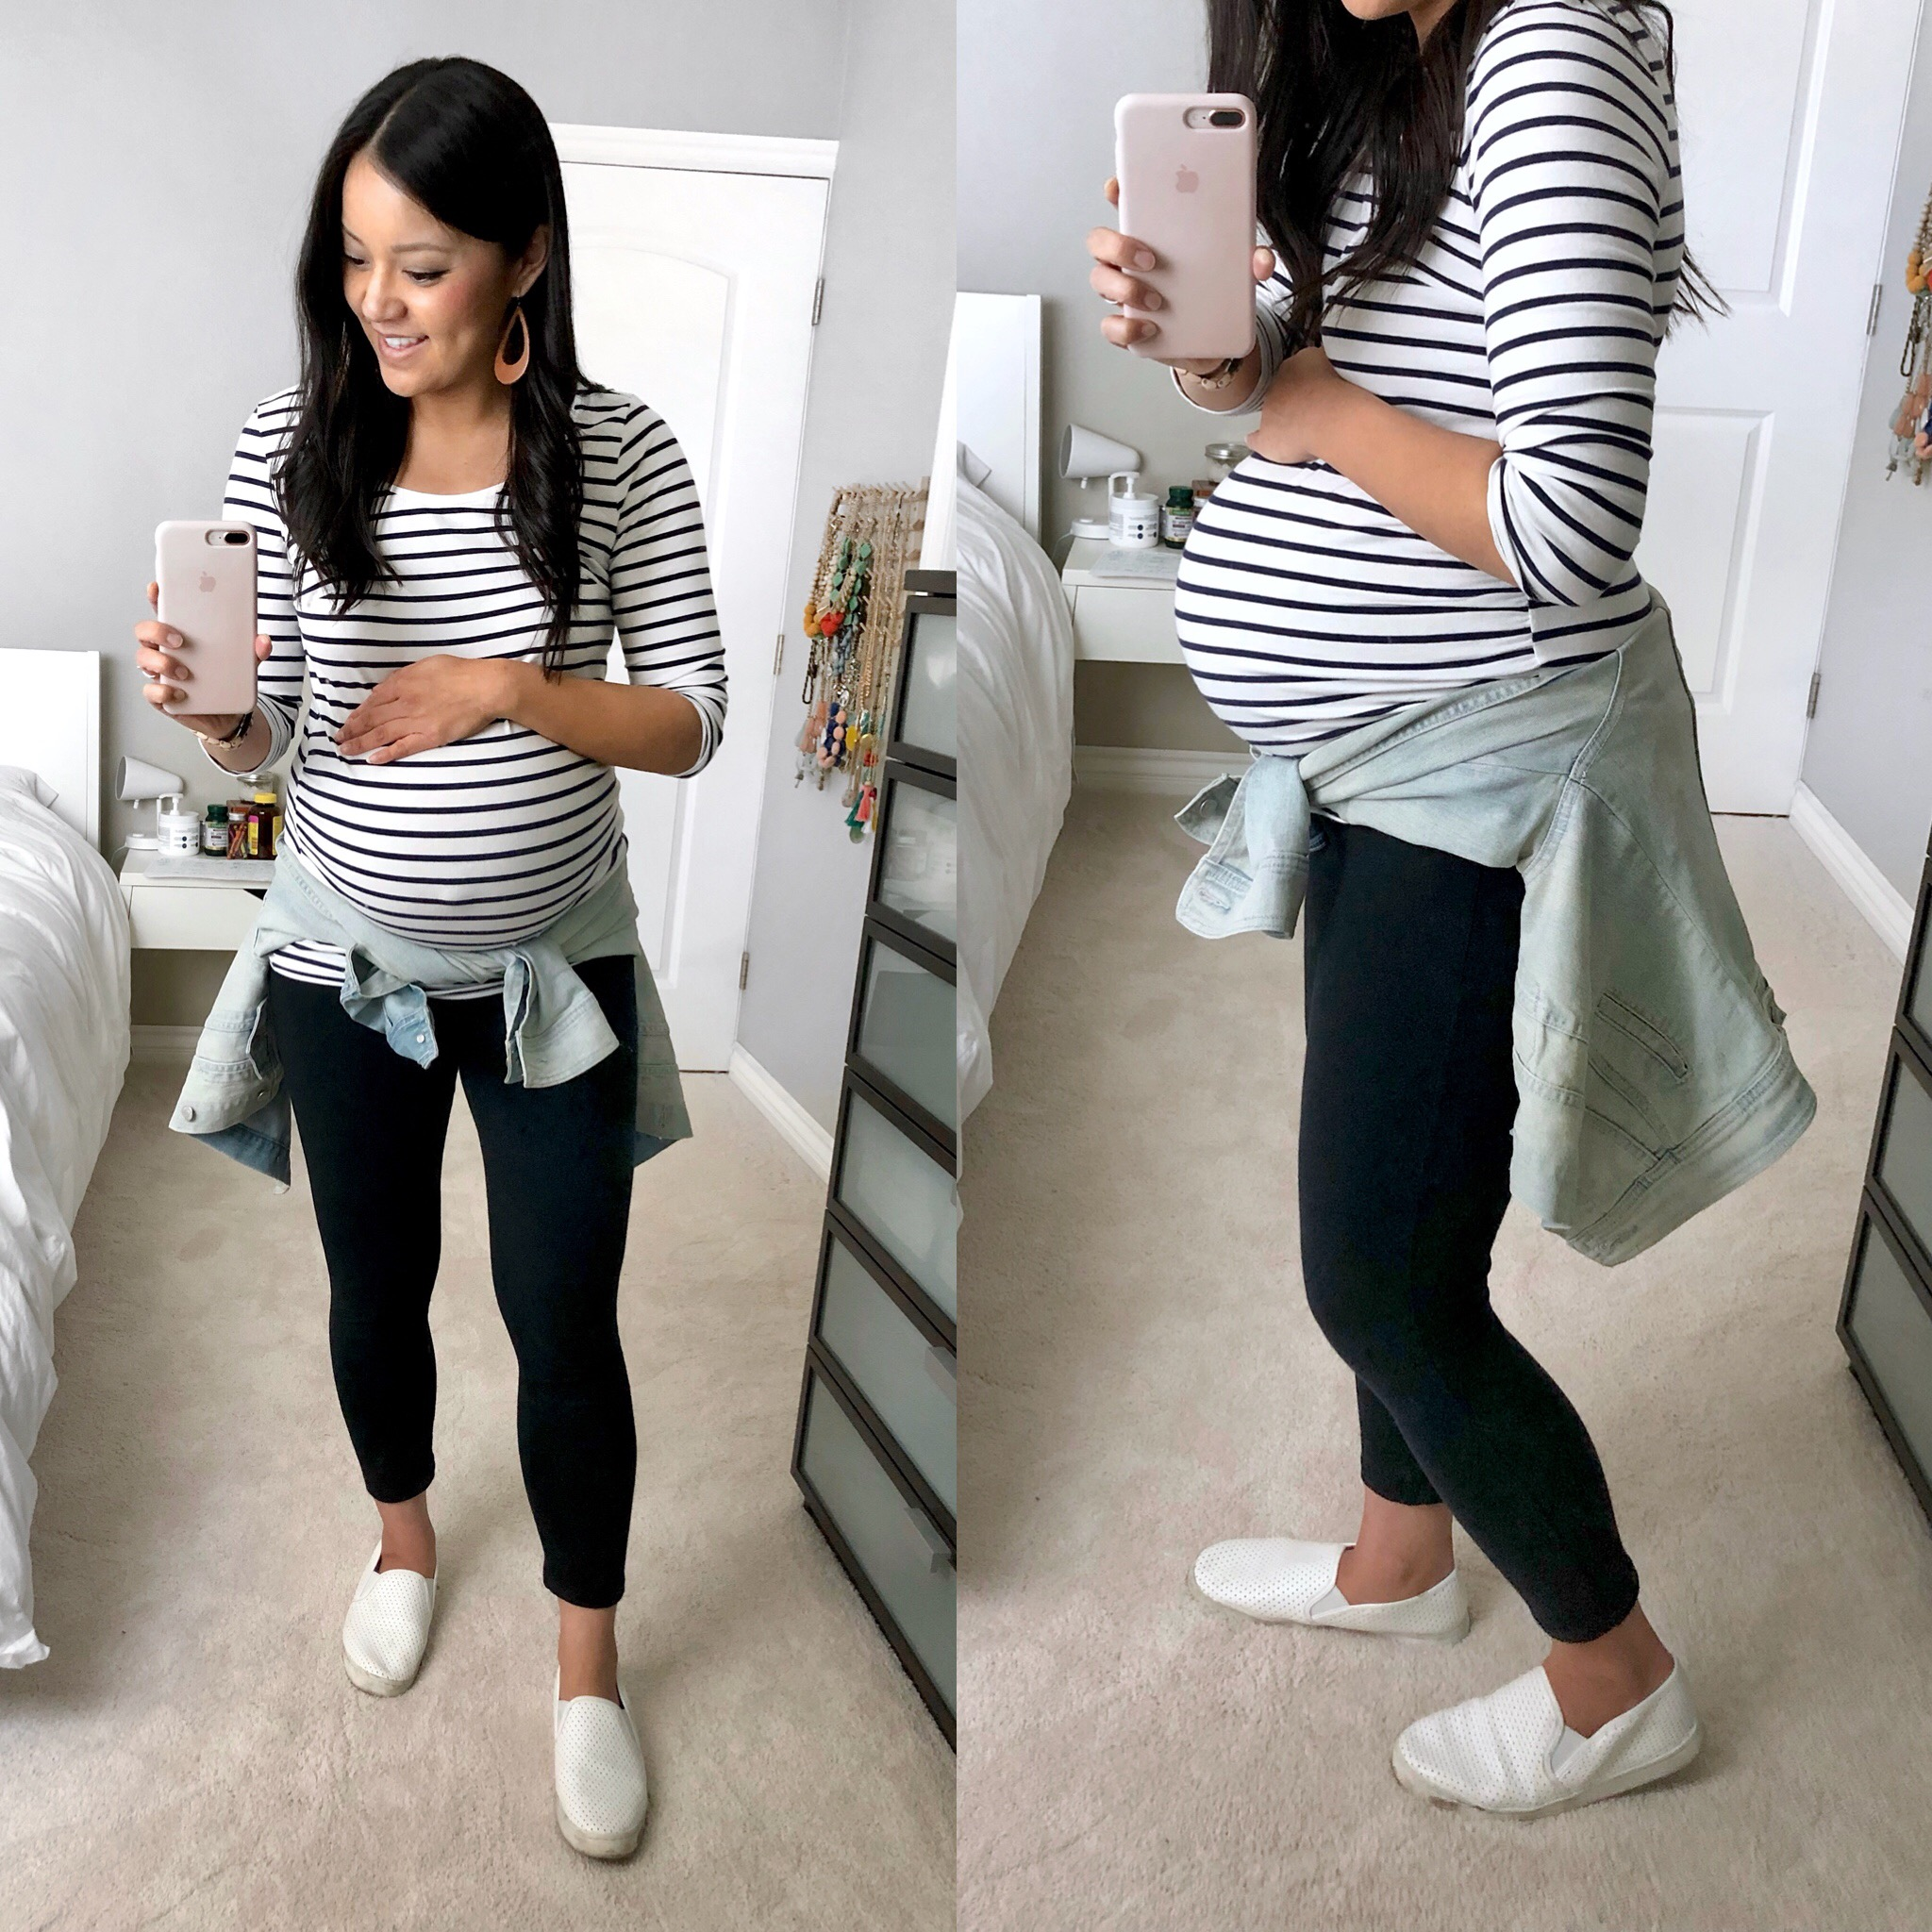 maternity style: striped tee + leggings + white sneakers